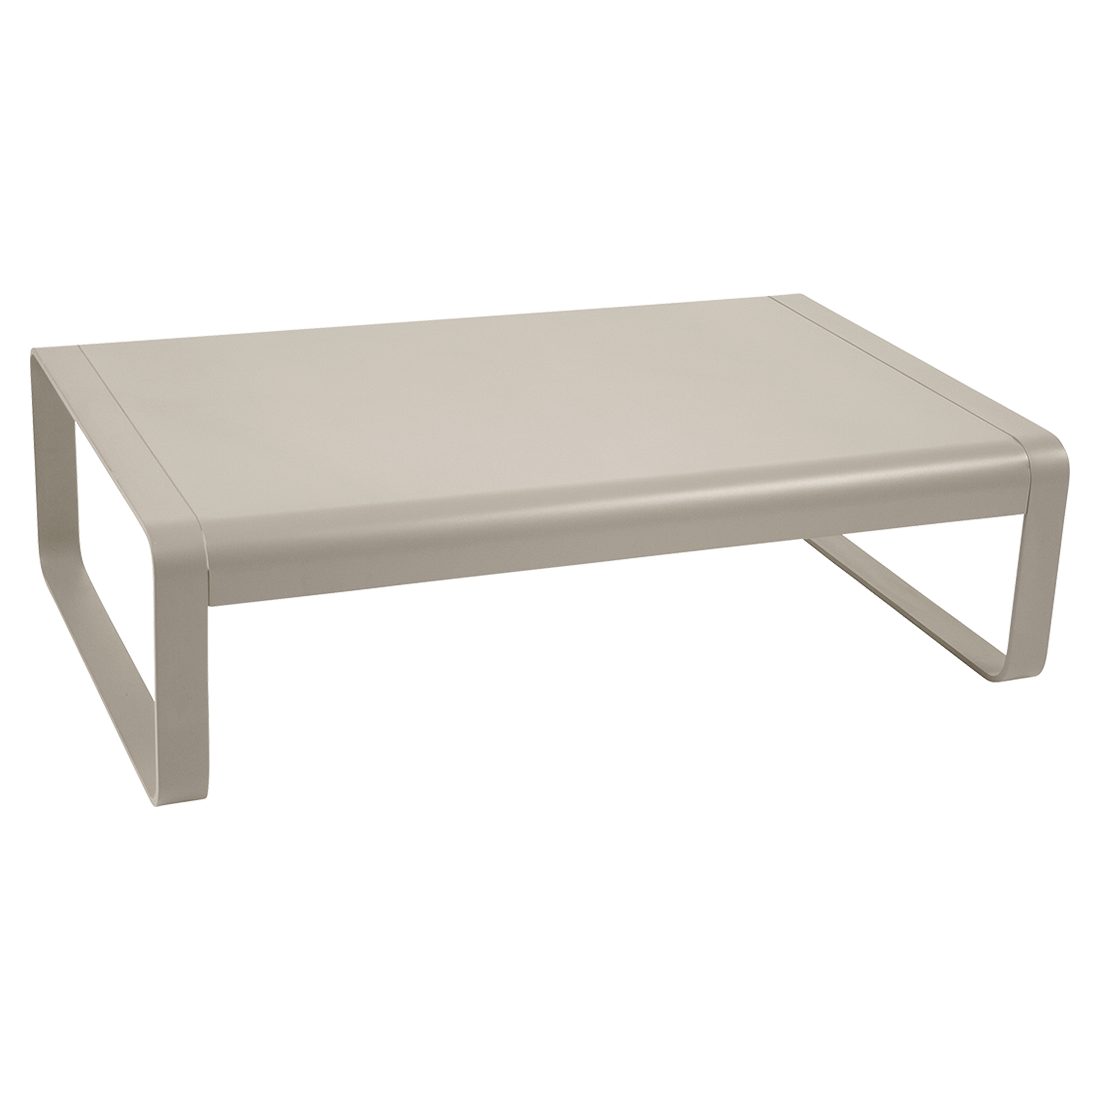 Bellevie low table, metal low table for outdoor living space